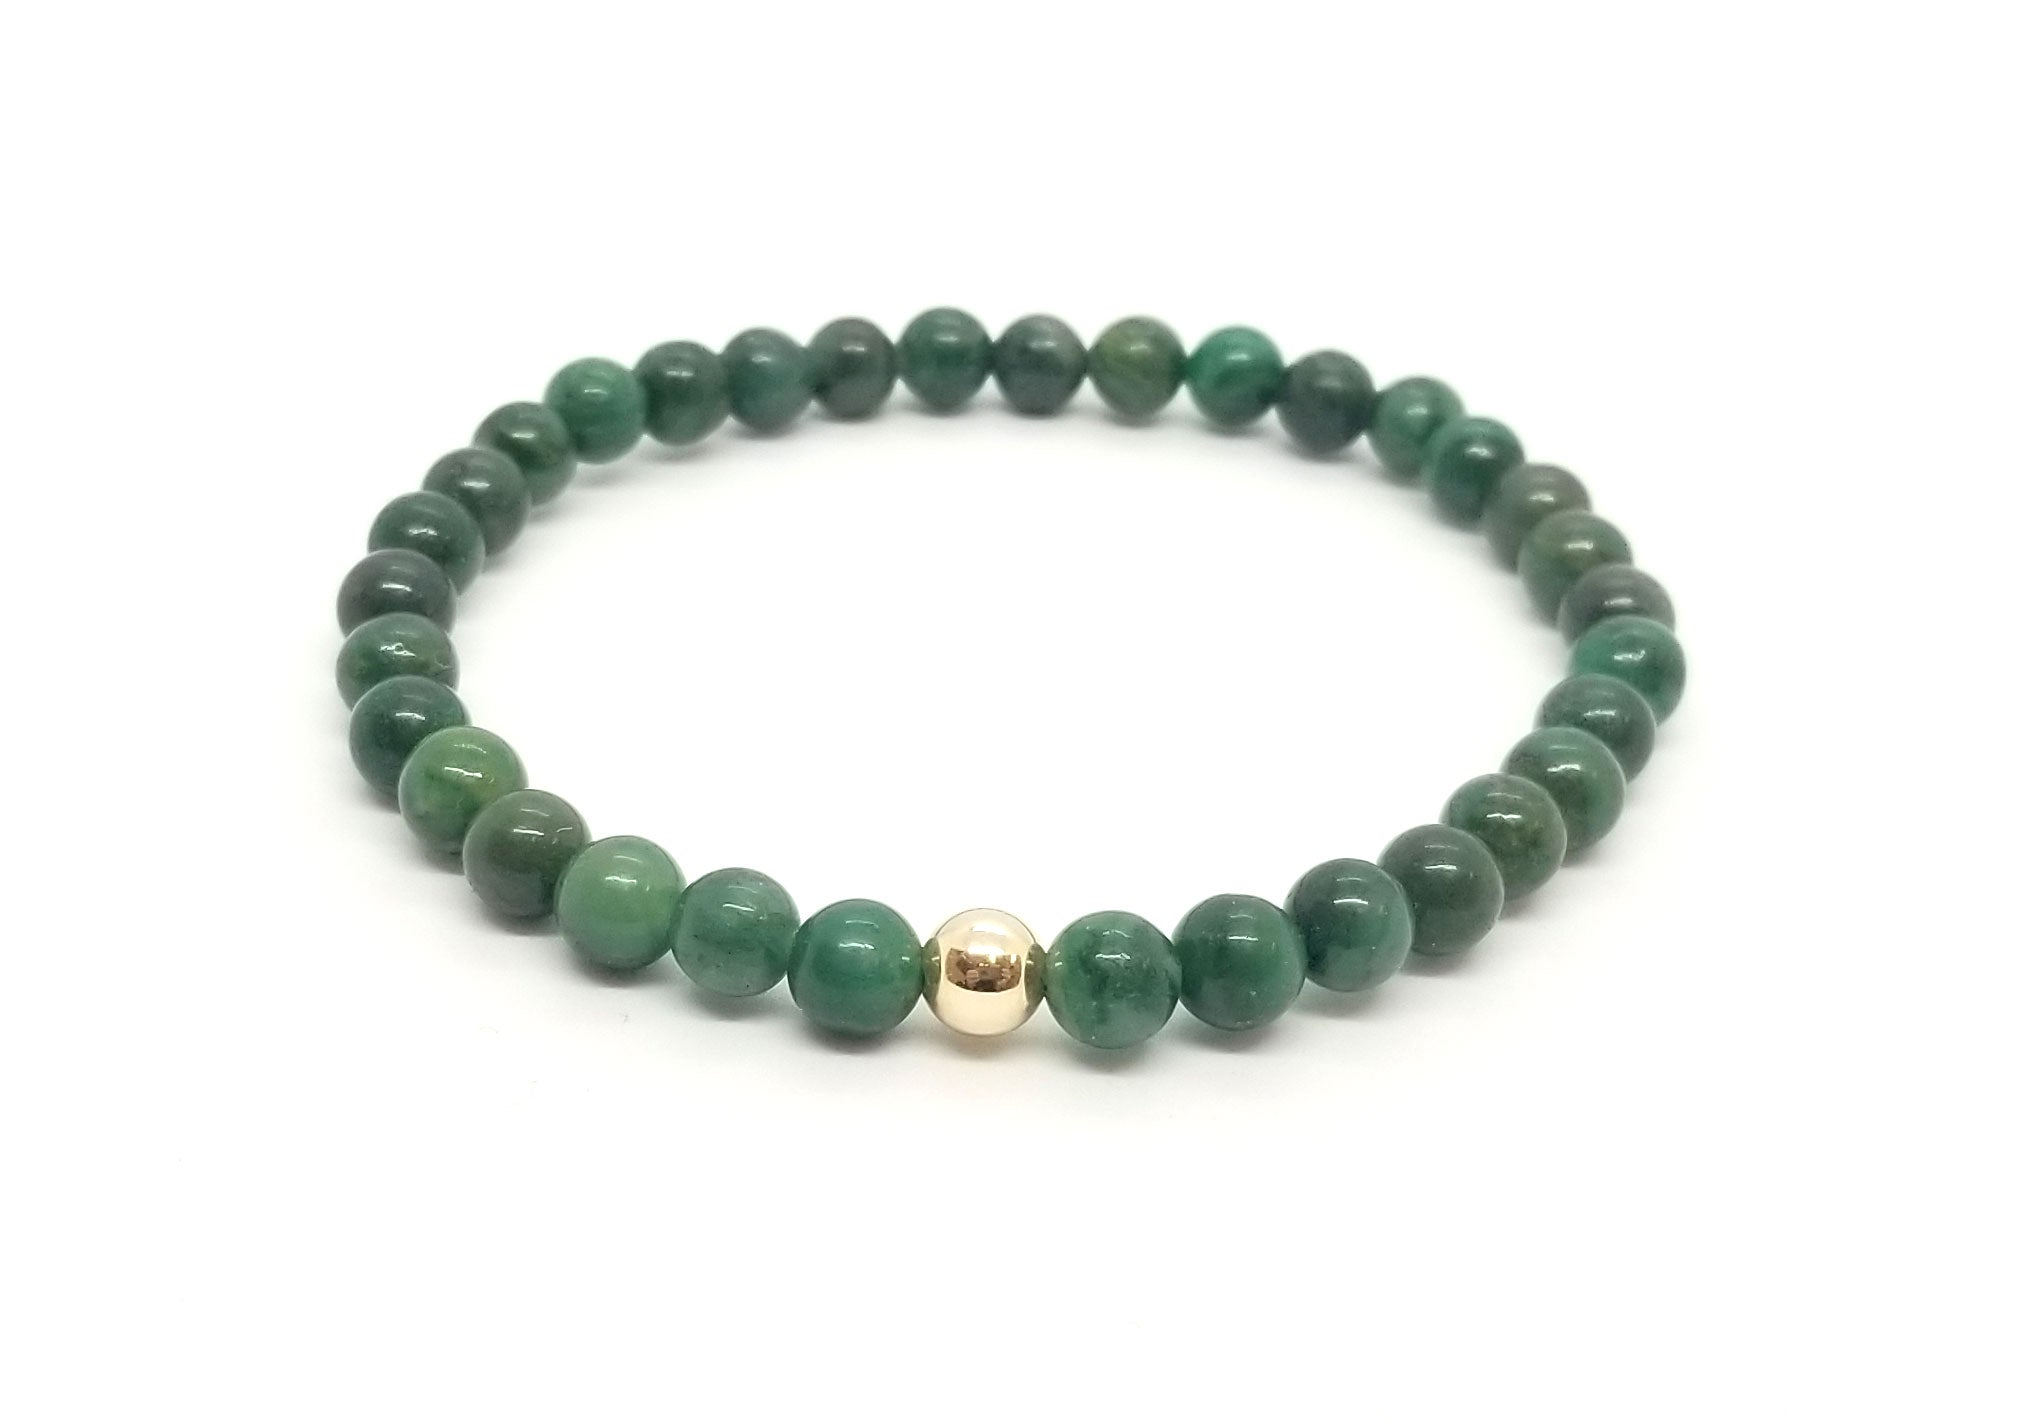 6mm African Jade With Gold Gemstone Bracelet